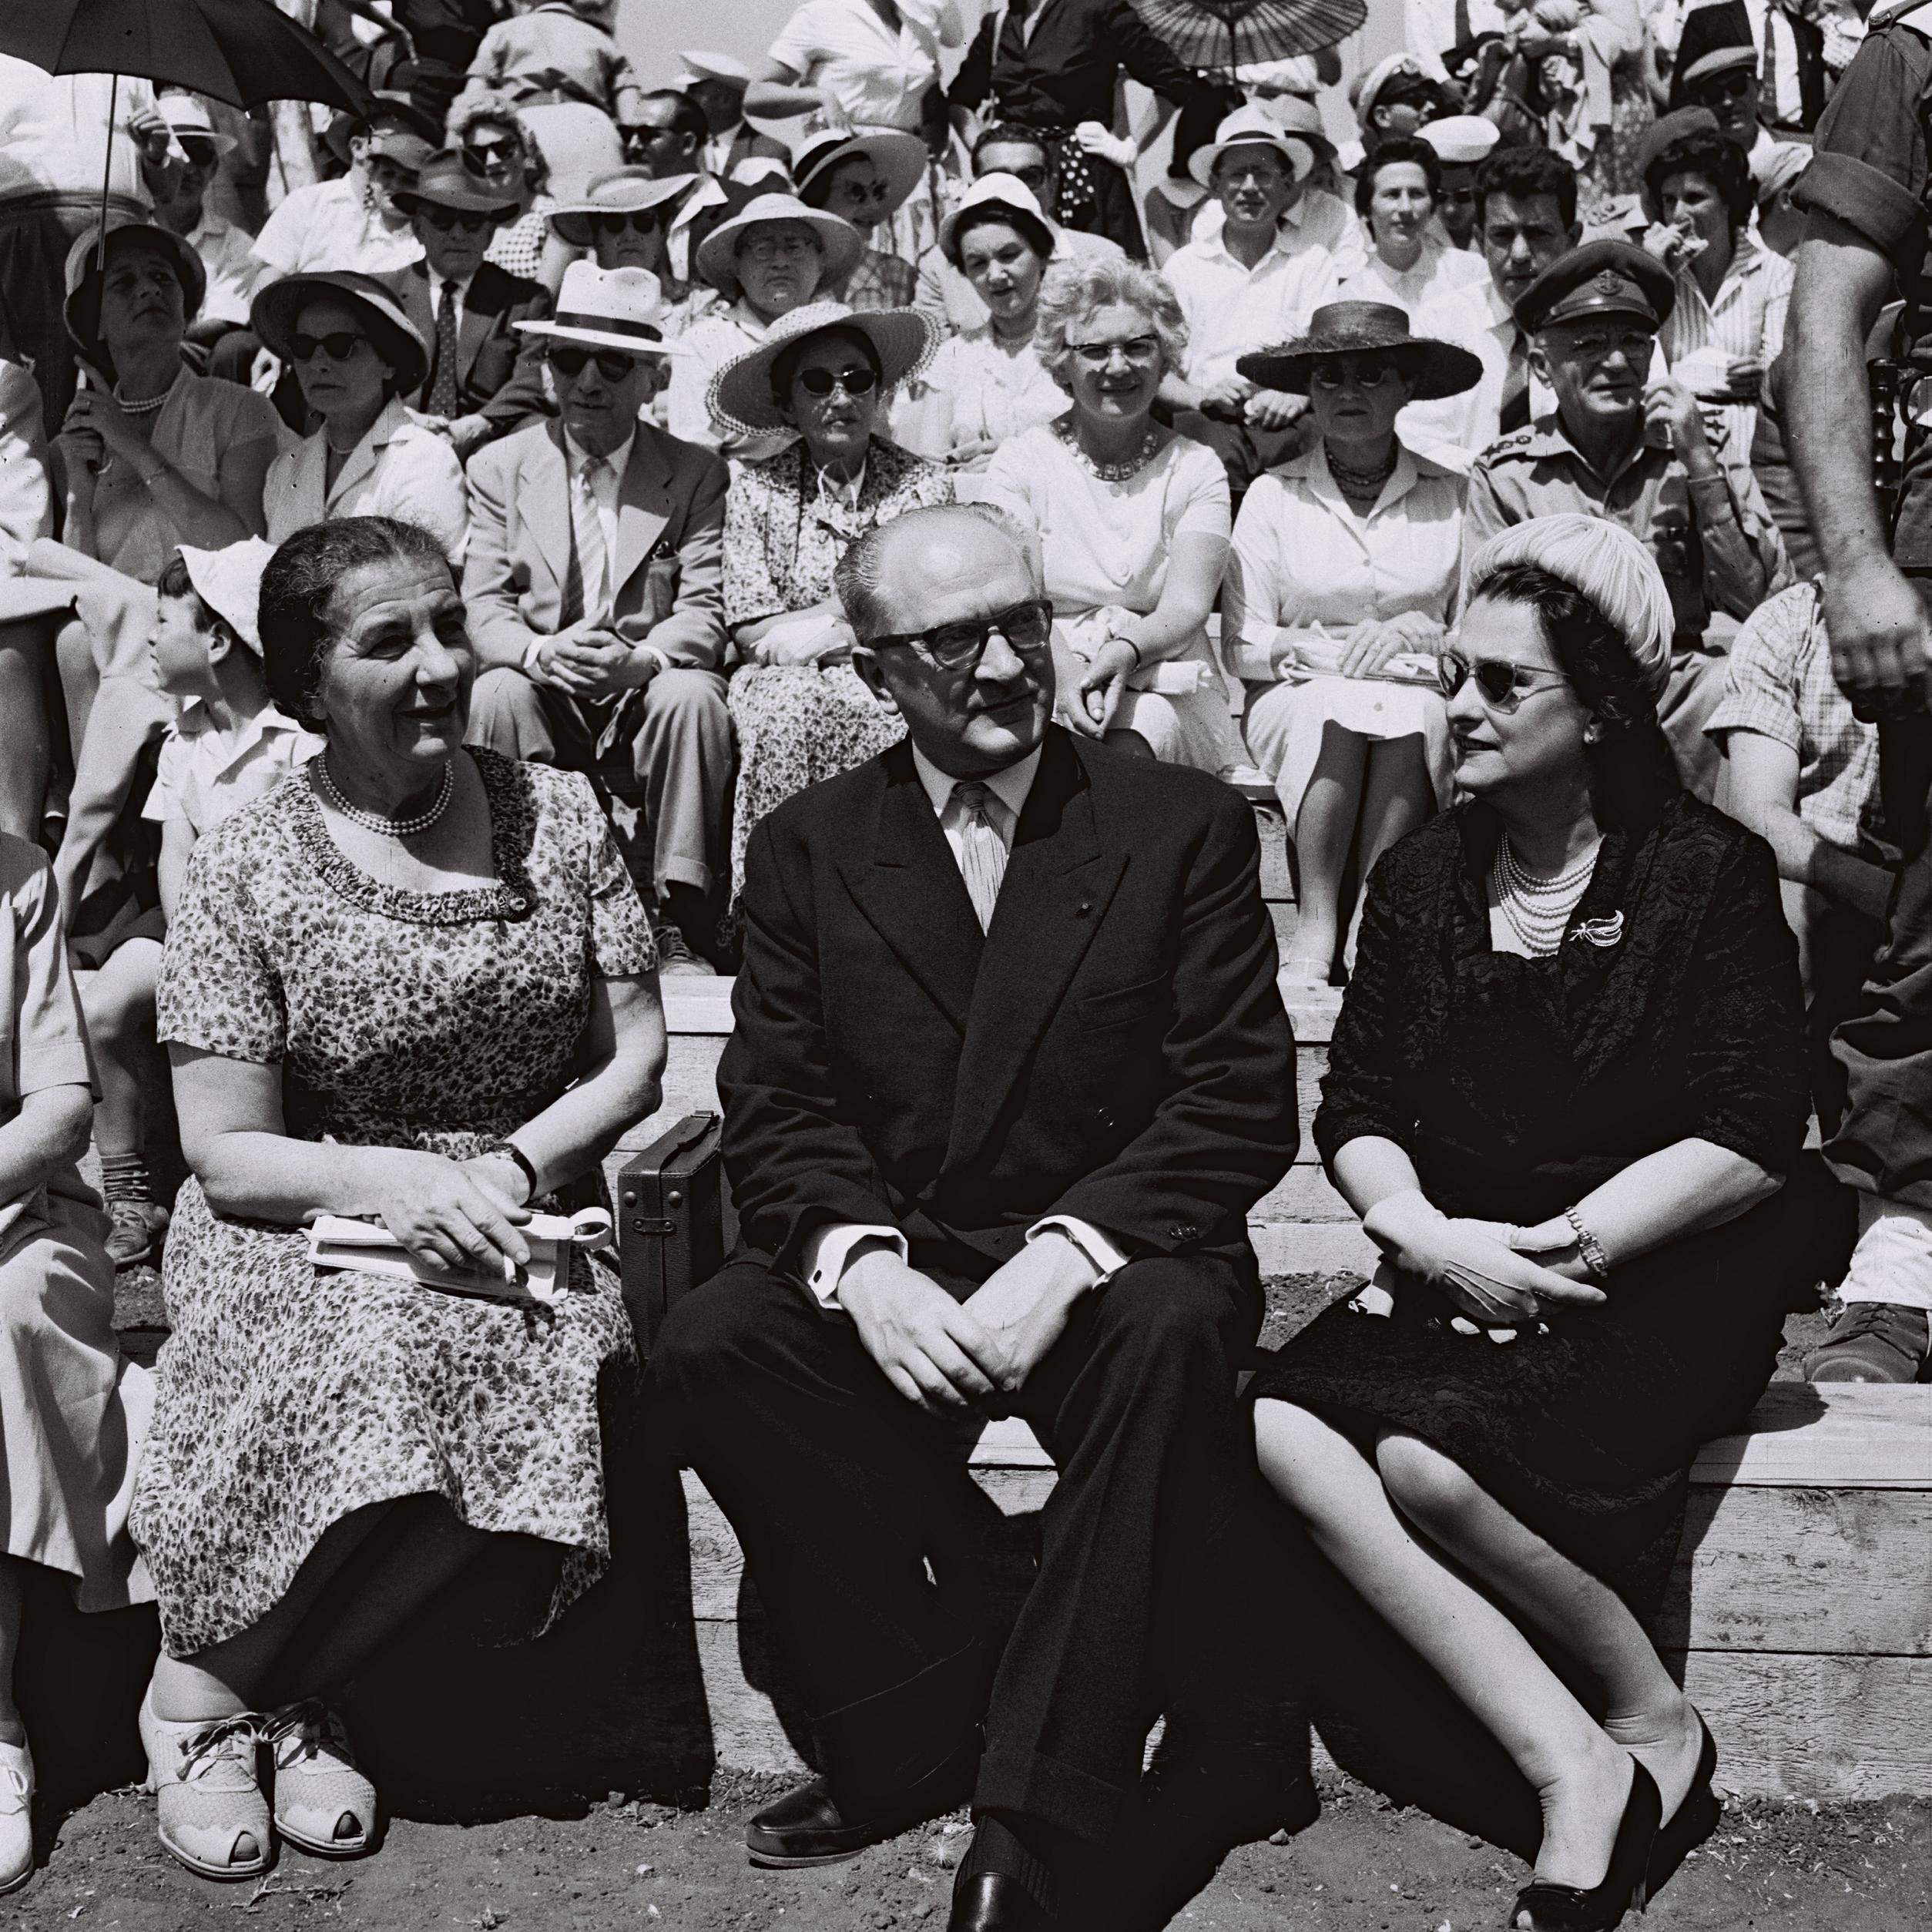 File:Guy Mollet-Golda Meir-Israel Indepence Day 1959.jpg